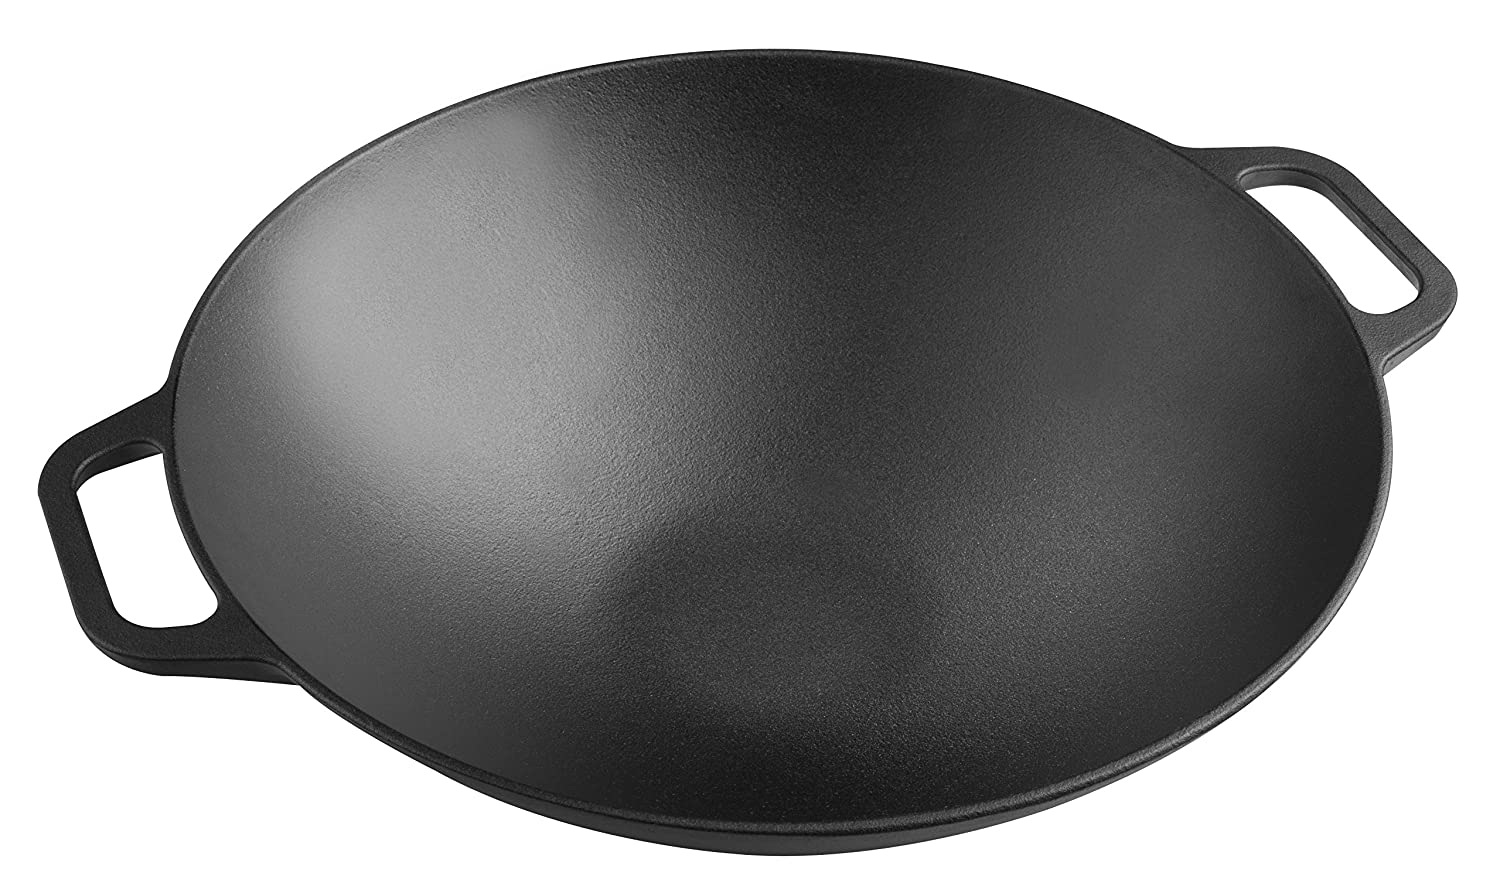 Victoria WOK-314 Smooth Balanced Base Cast Iron Seasoned Wok with Wide Handles, Large/14, Black, 100% NON-GMO Flaxseed Oil Seasoning Large/14